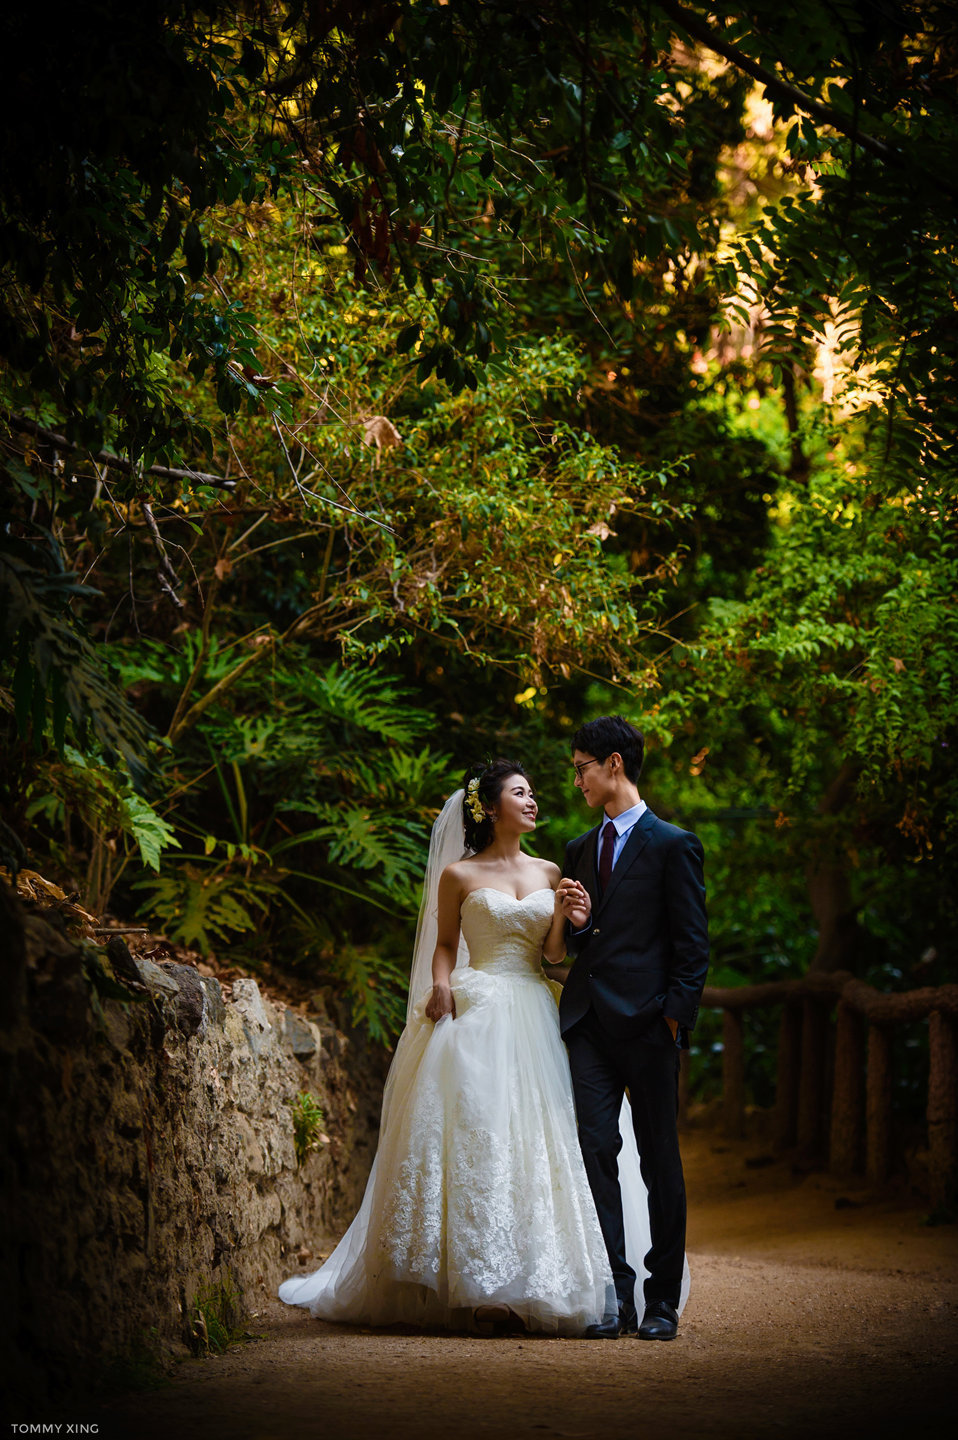 Los Angeles Pre Wedding 洛杉矶婚纱照 Tommy Xing Photography 15.jpg